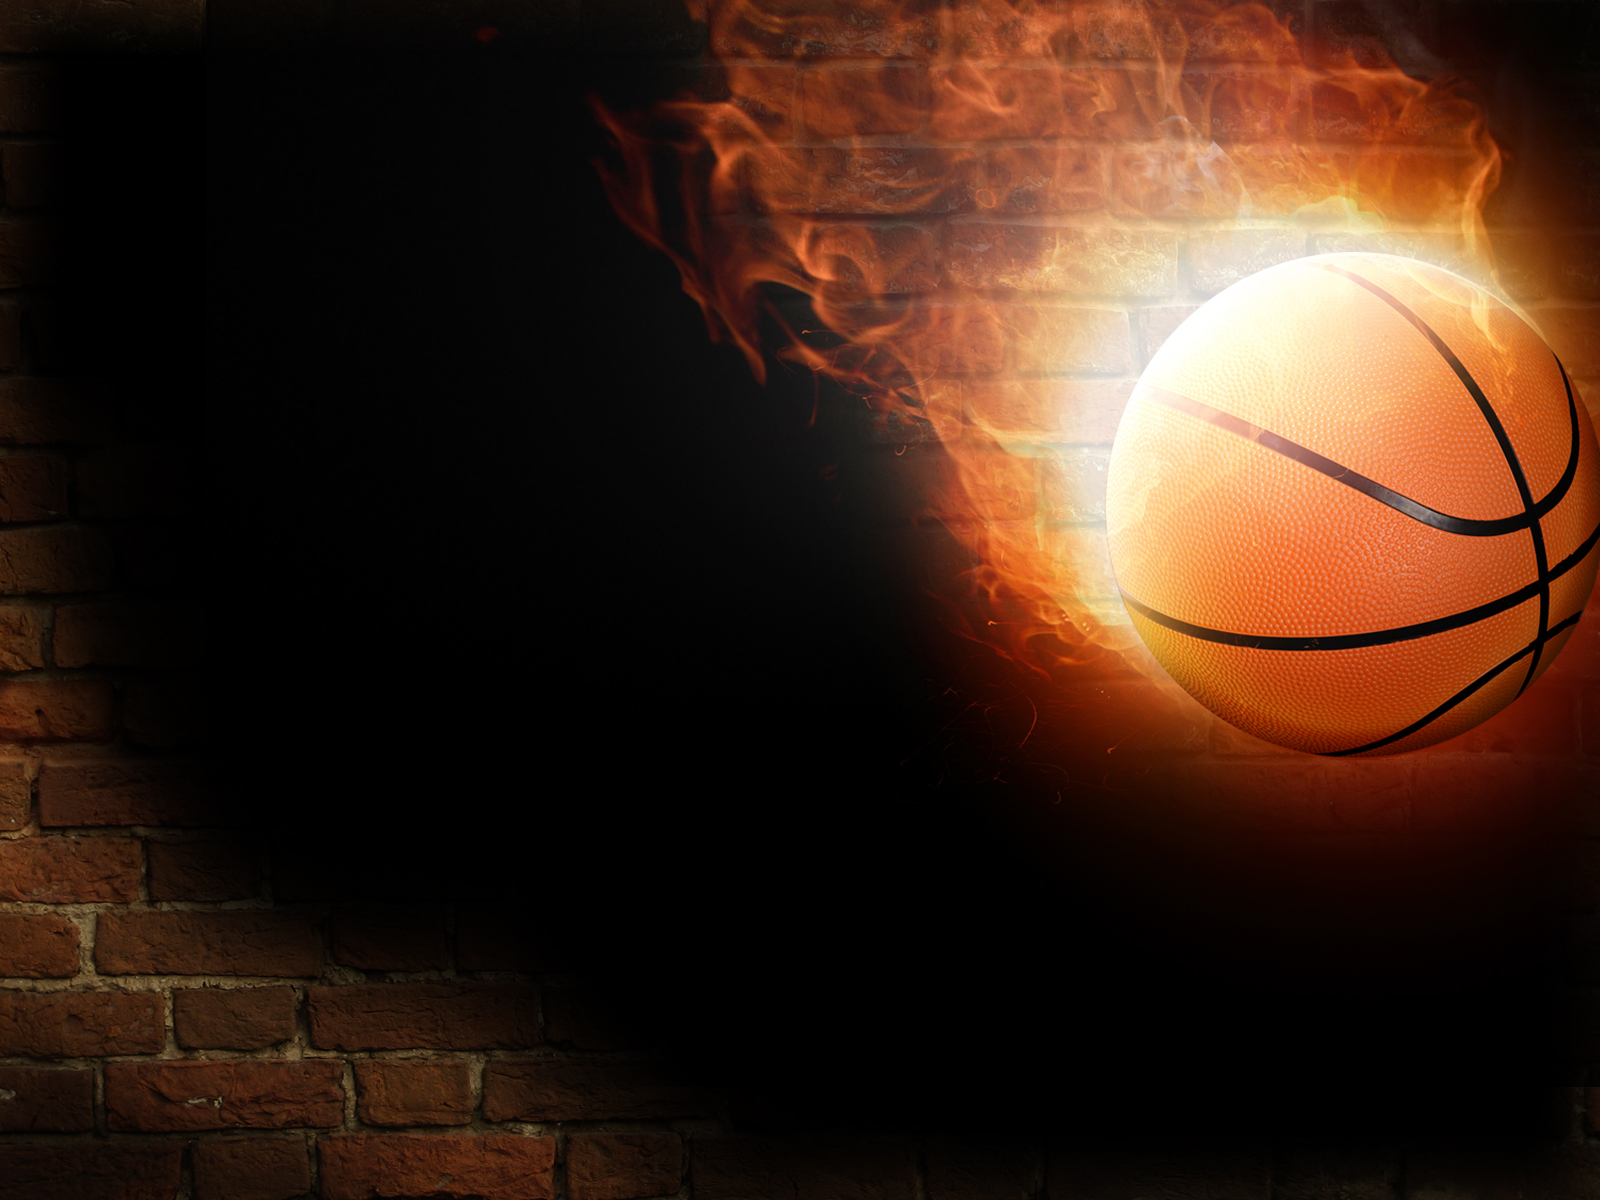 Basketball in fire Wallpaper